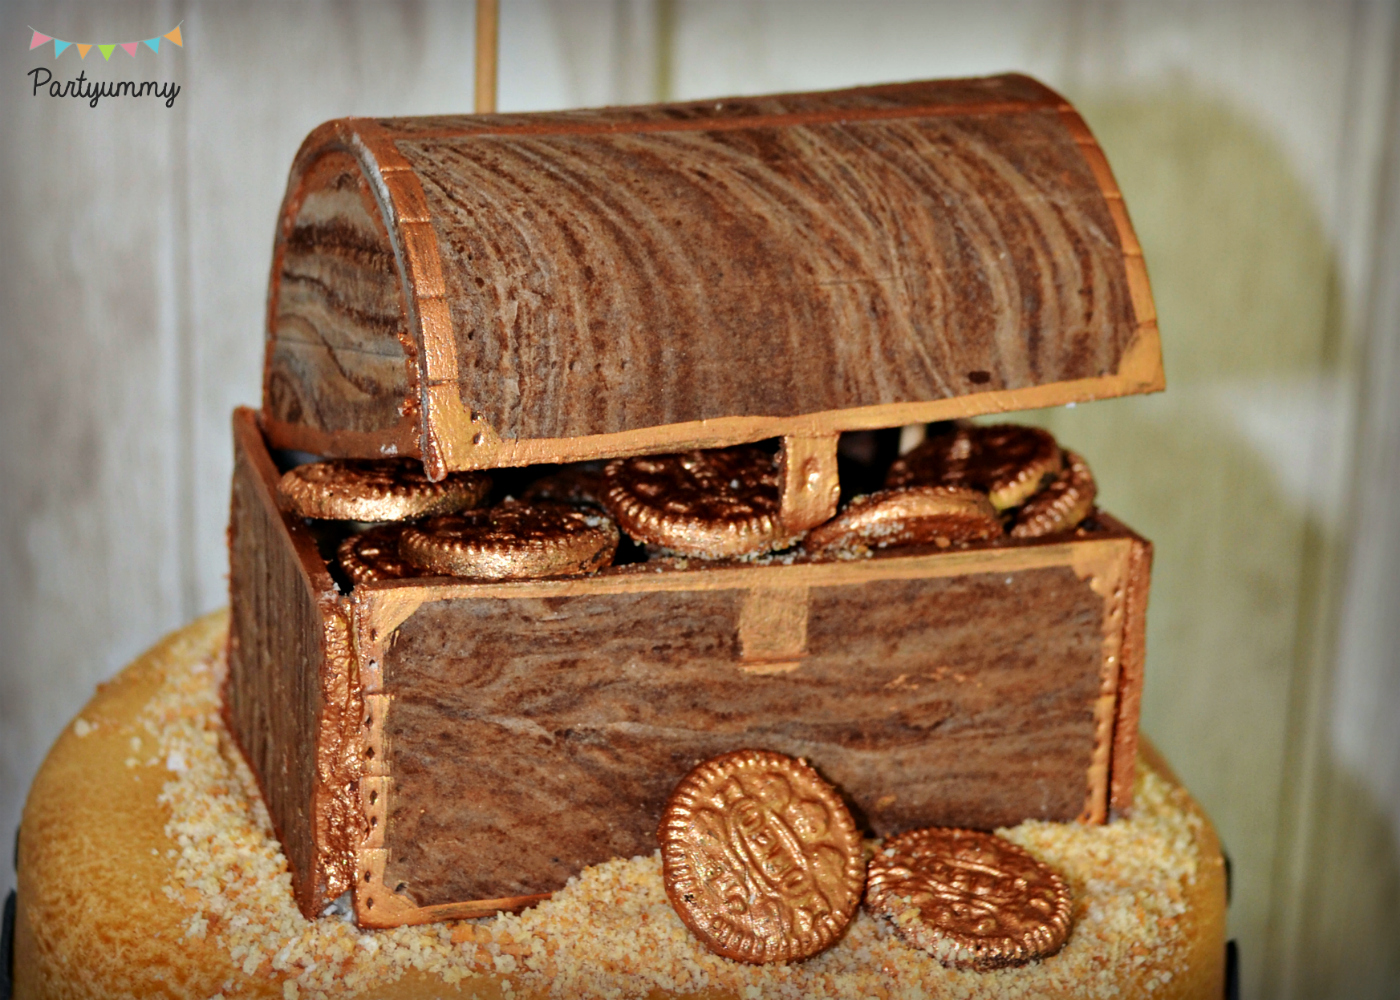 pate-sucre-coffre-pirate-tresor-treasure-chest-fondant